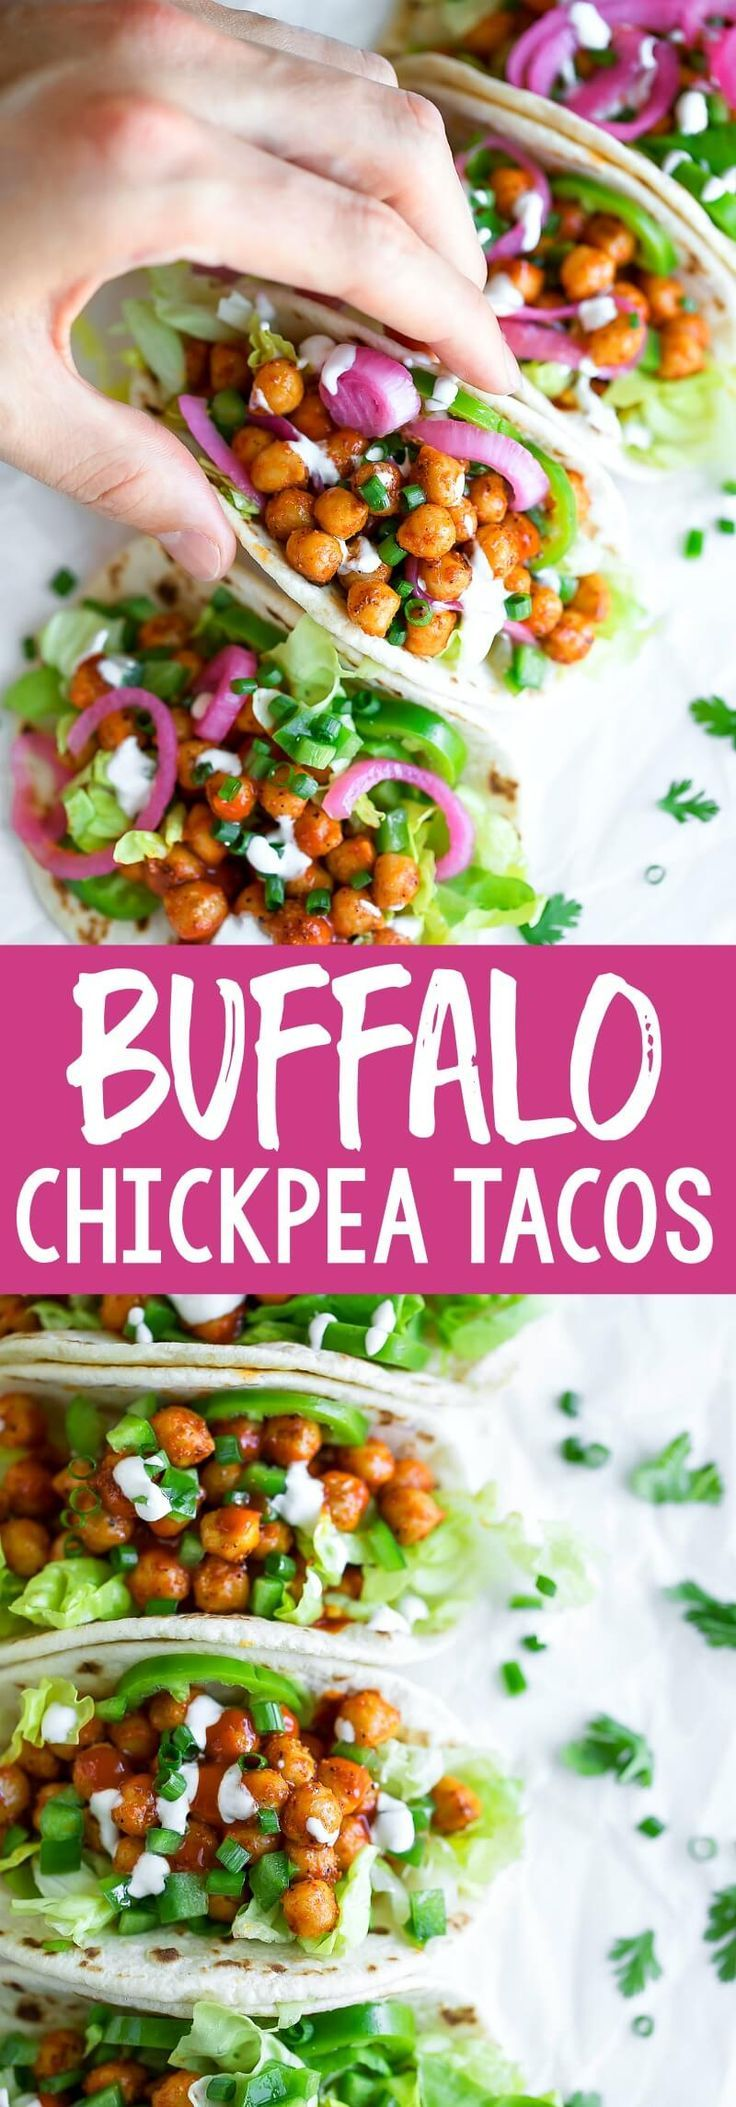 Buffalo Chickpea Tacos images